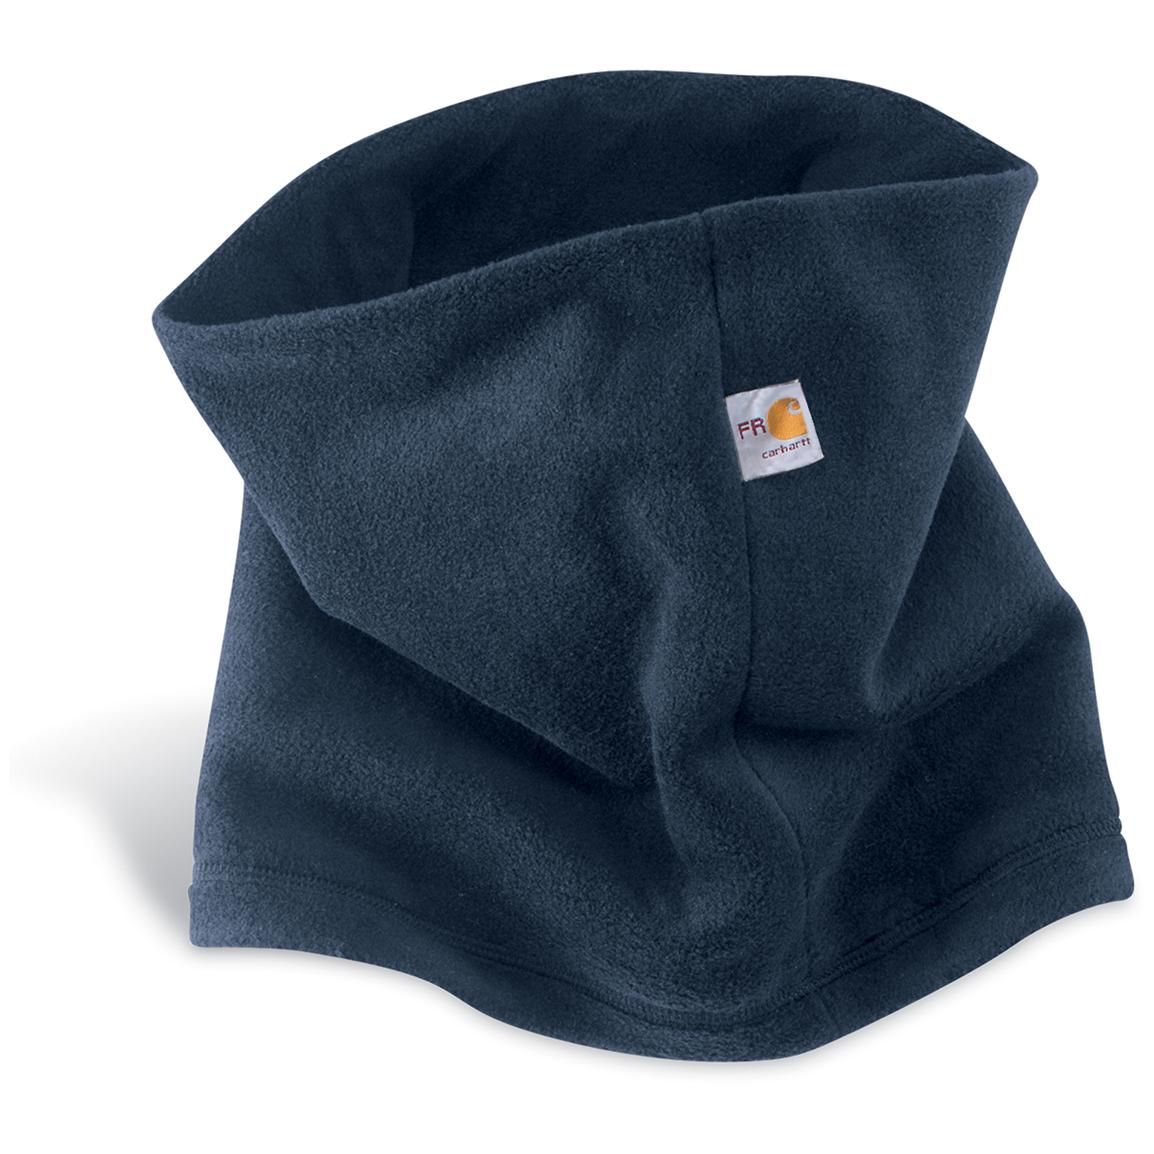 Carhartt® Flame-resistant Neck Gaiter